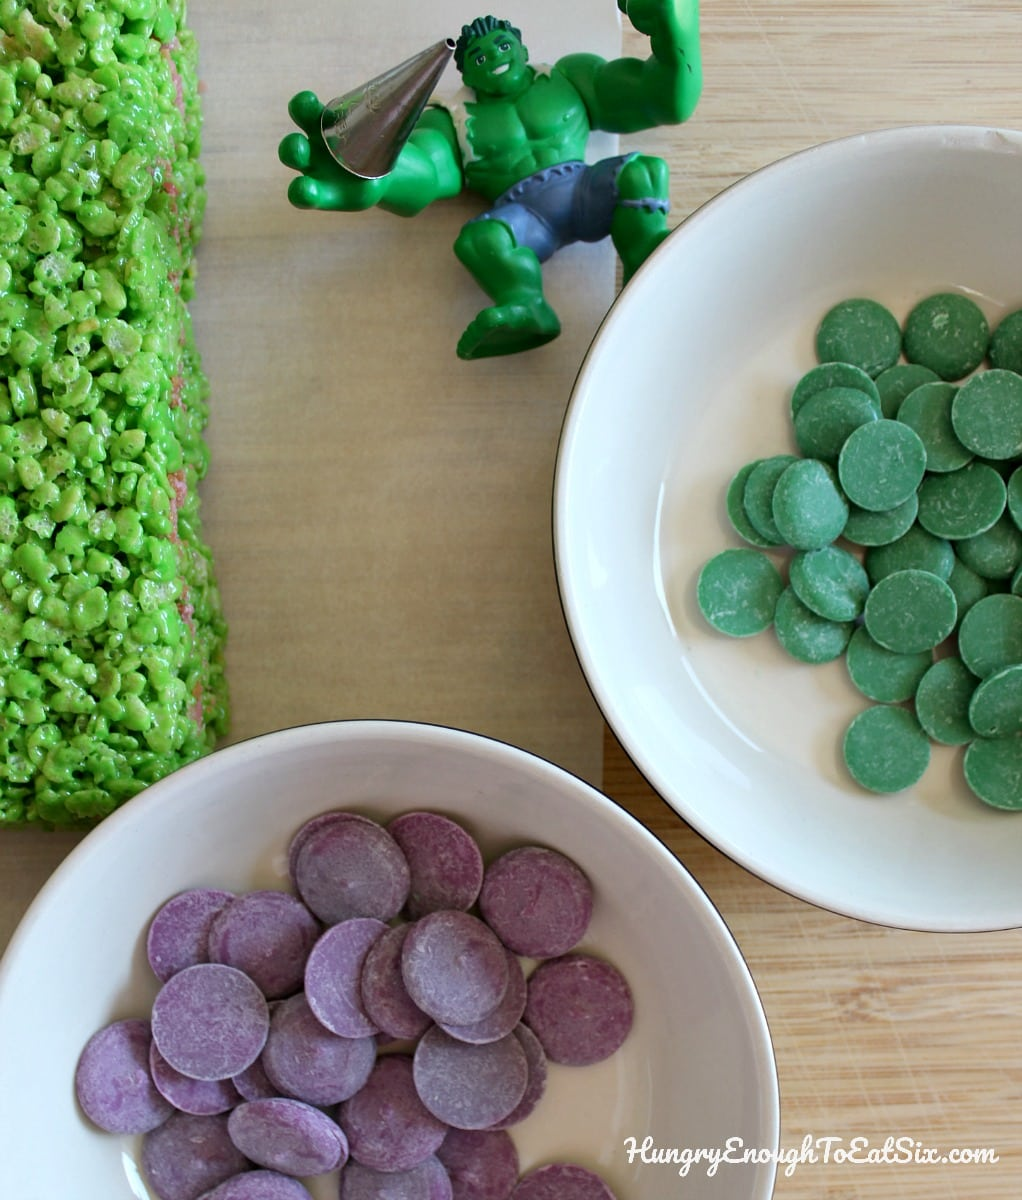 Green and purple candy melts in bowls next to a Hulk toy